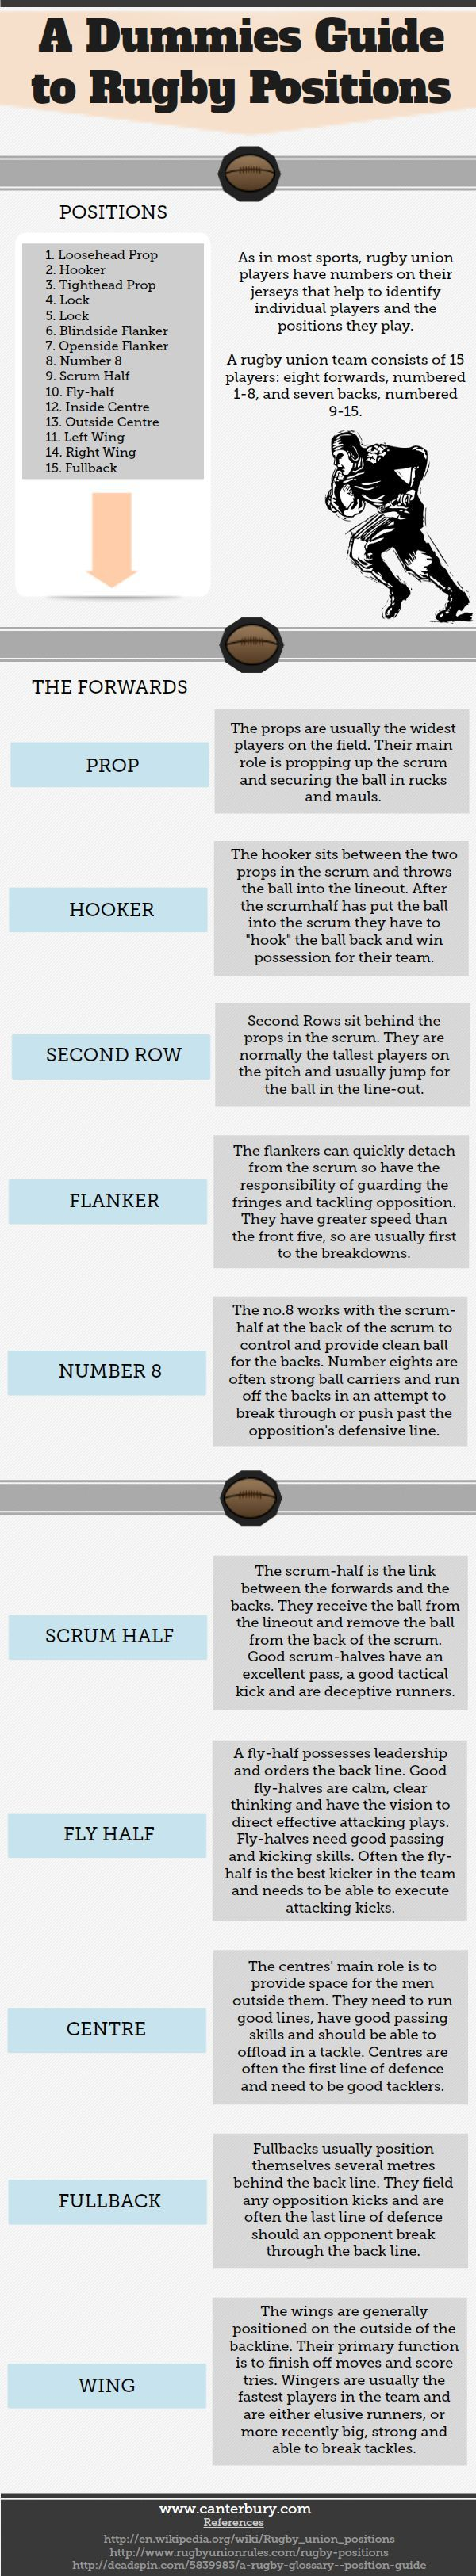 A guide to rugby positions--OK, so not volleyball but hopefully now I can have a bit of a clue as to what Hope does!